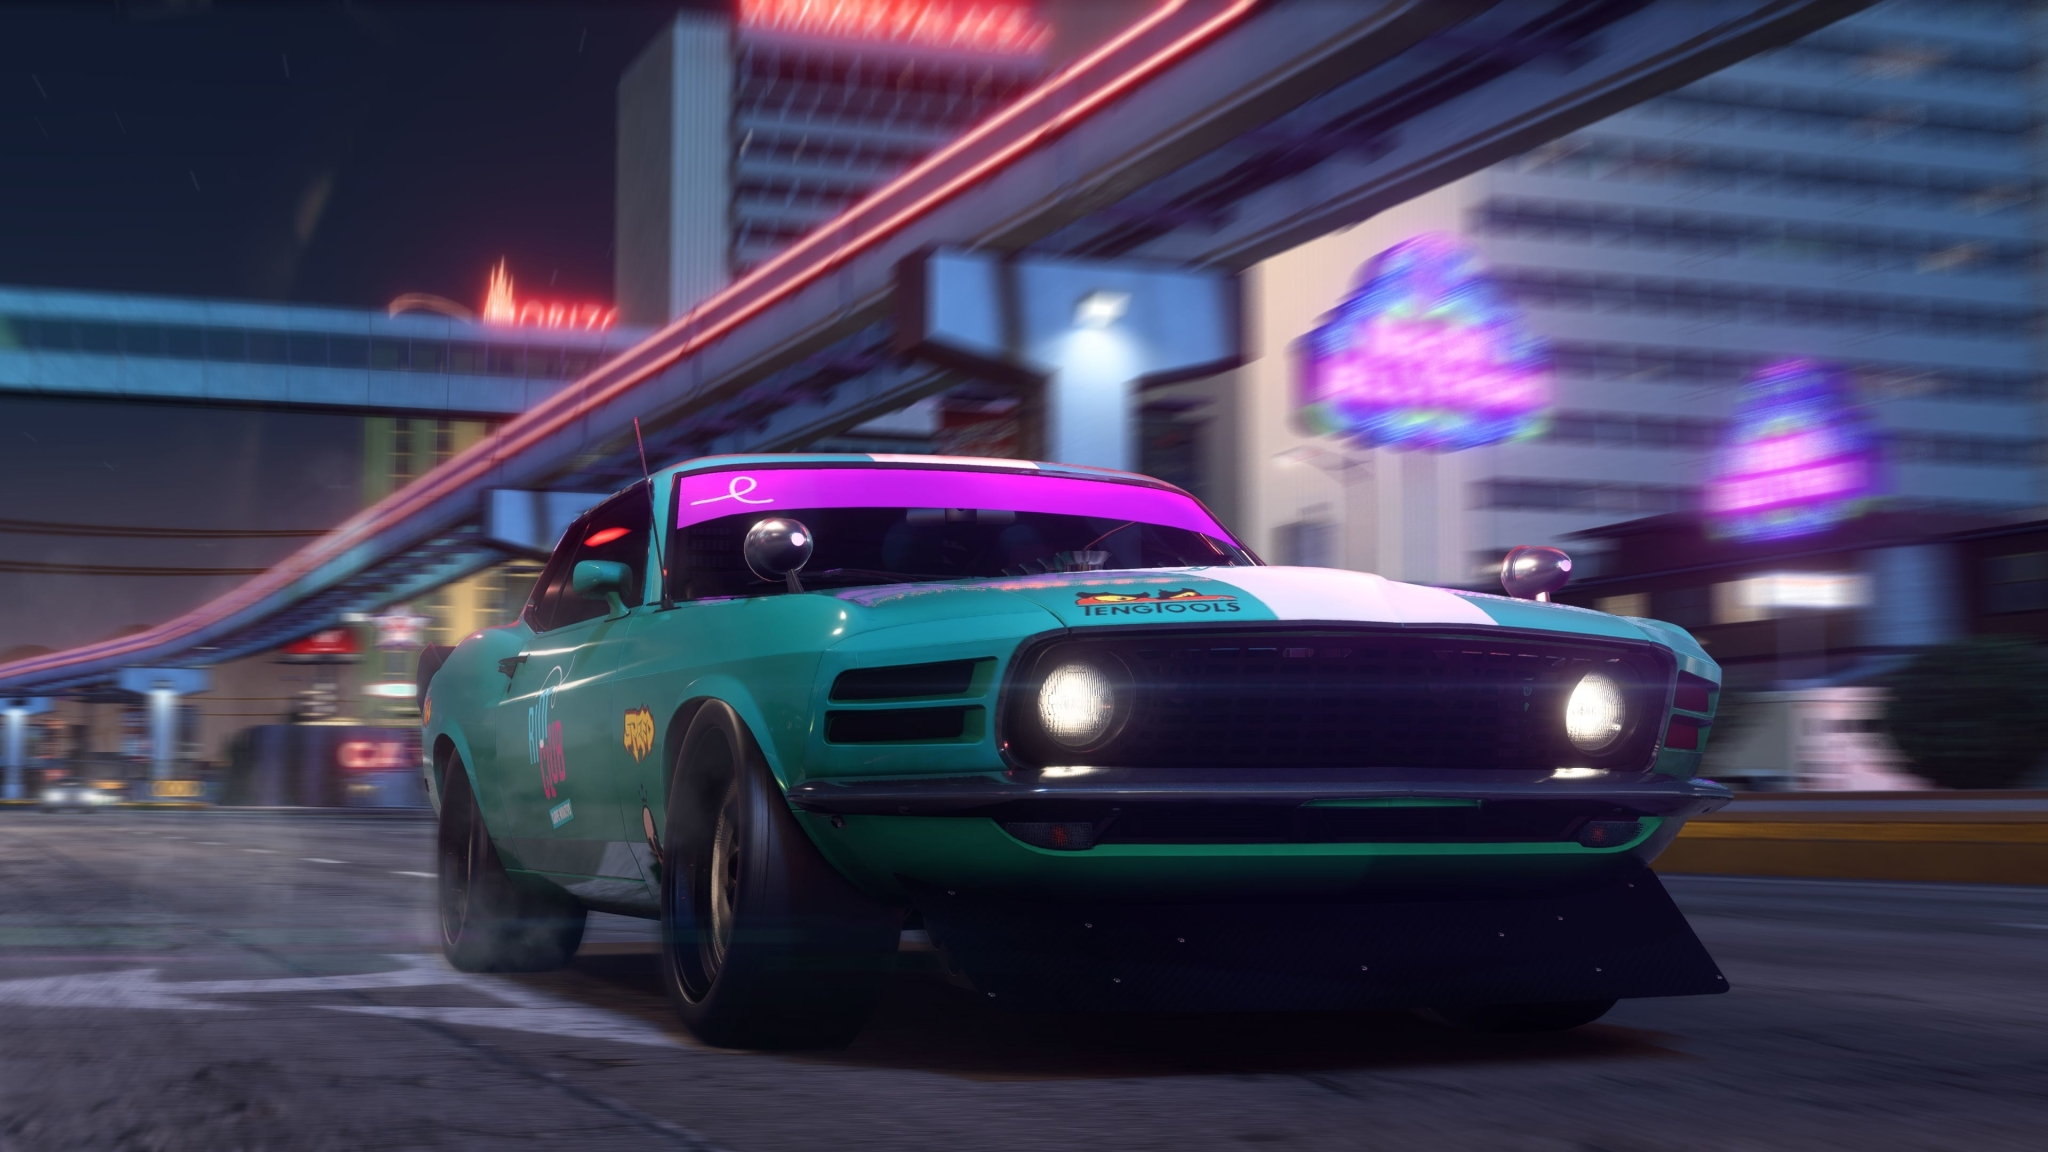 10 Most Popular Need For Speed Wallpaper Full Hd 1080p For: Download Riot Club Street Leagues Need For Speed Payback